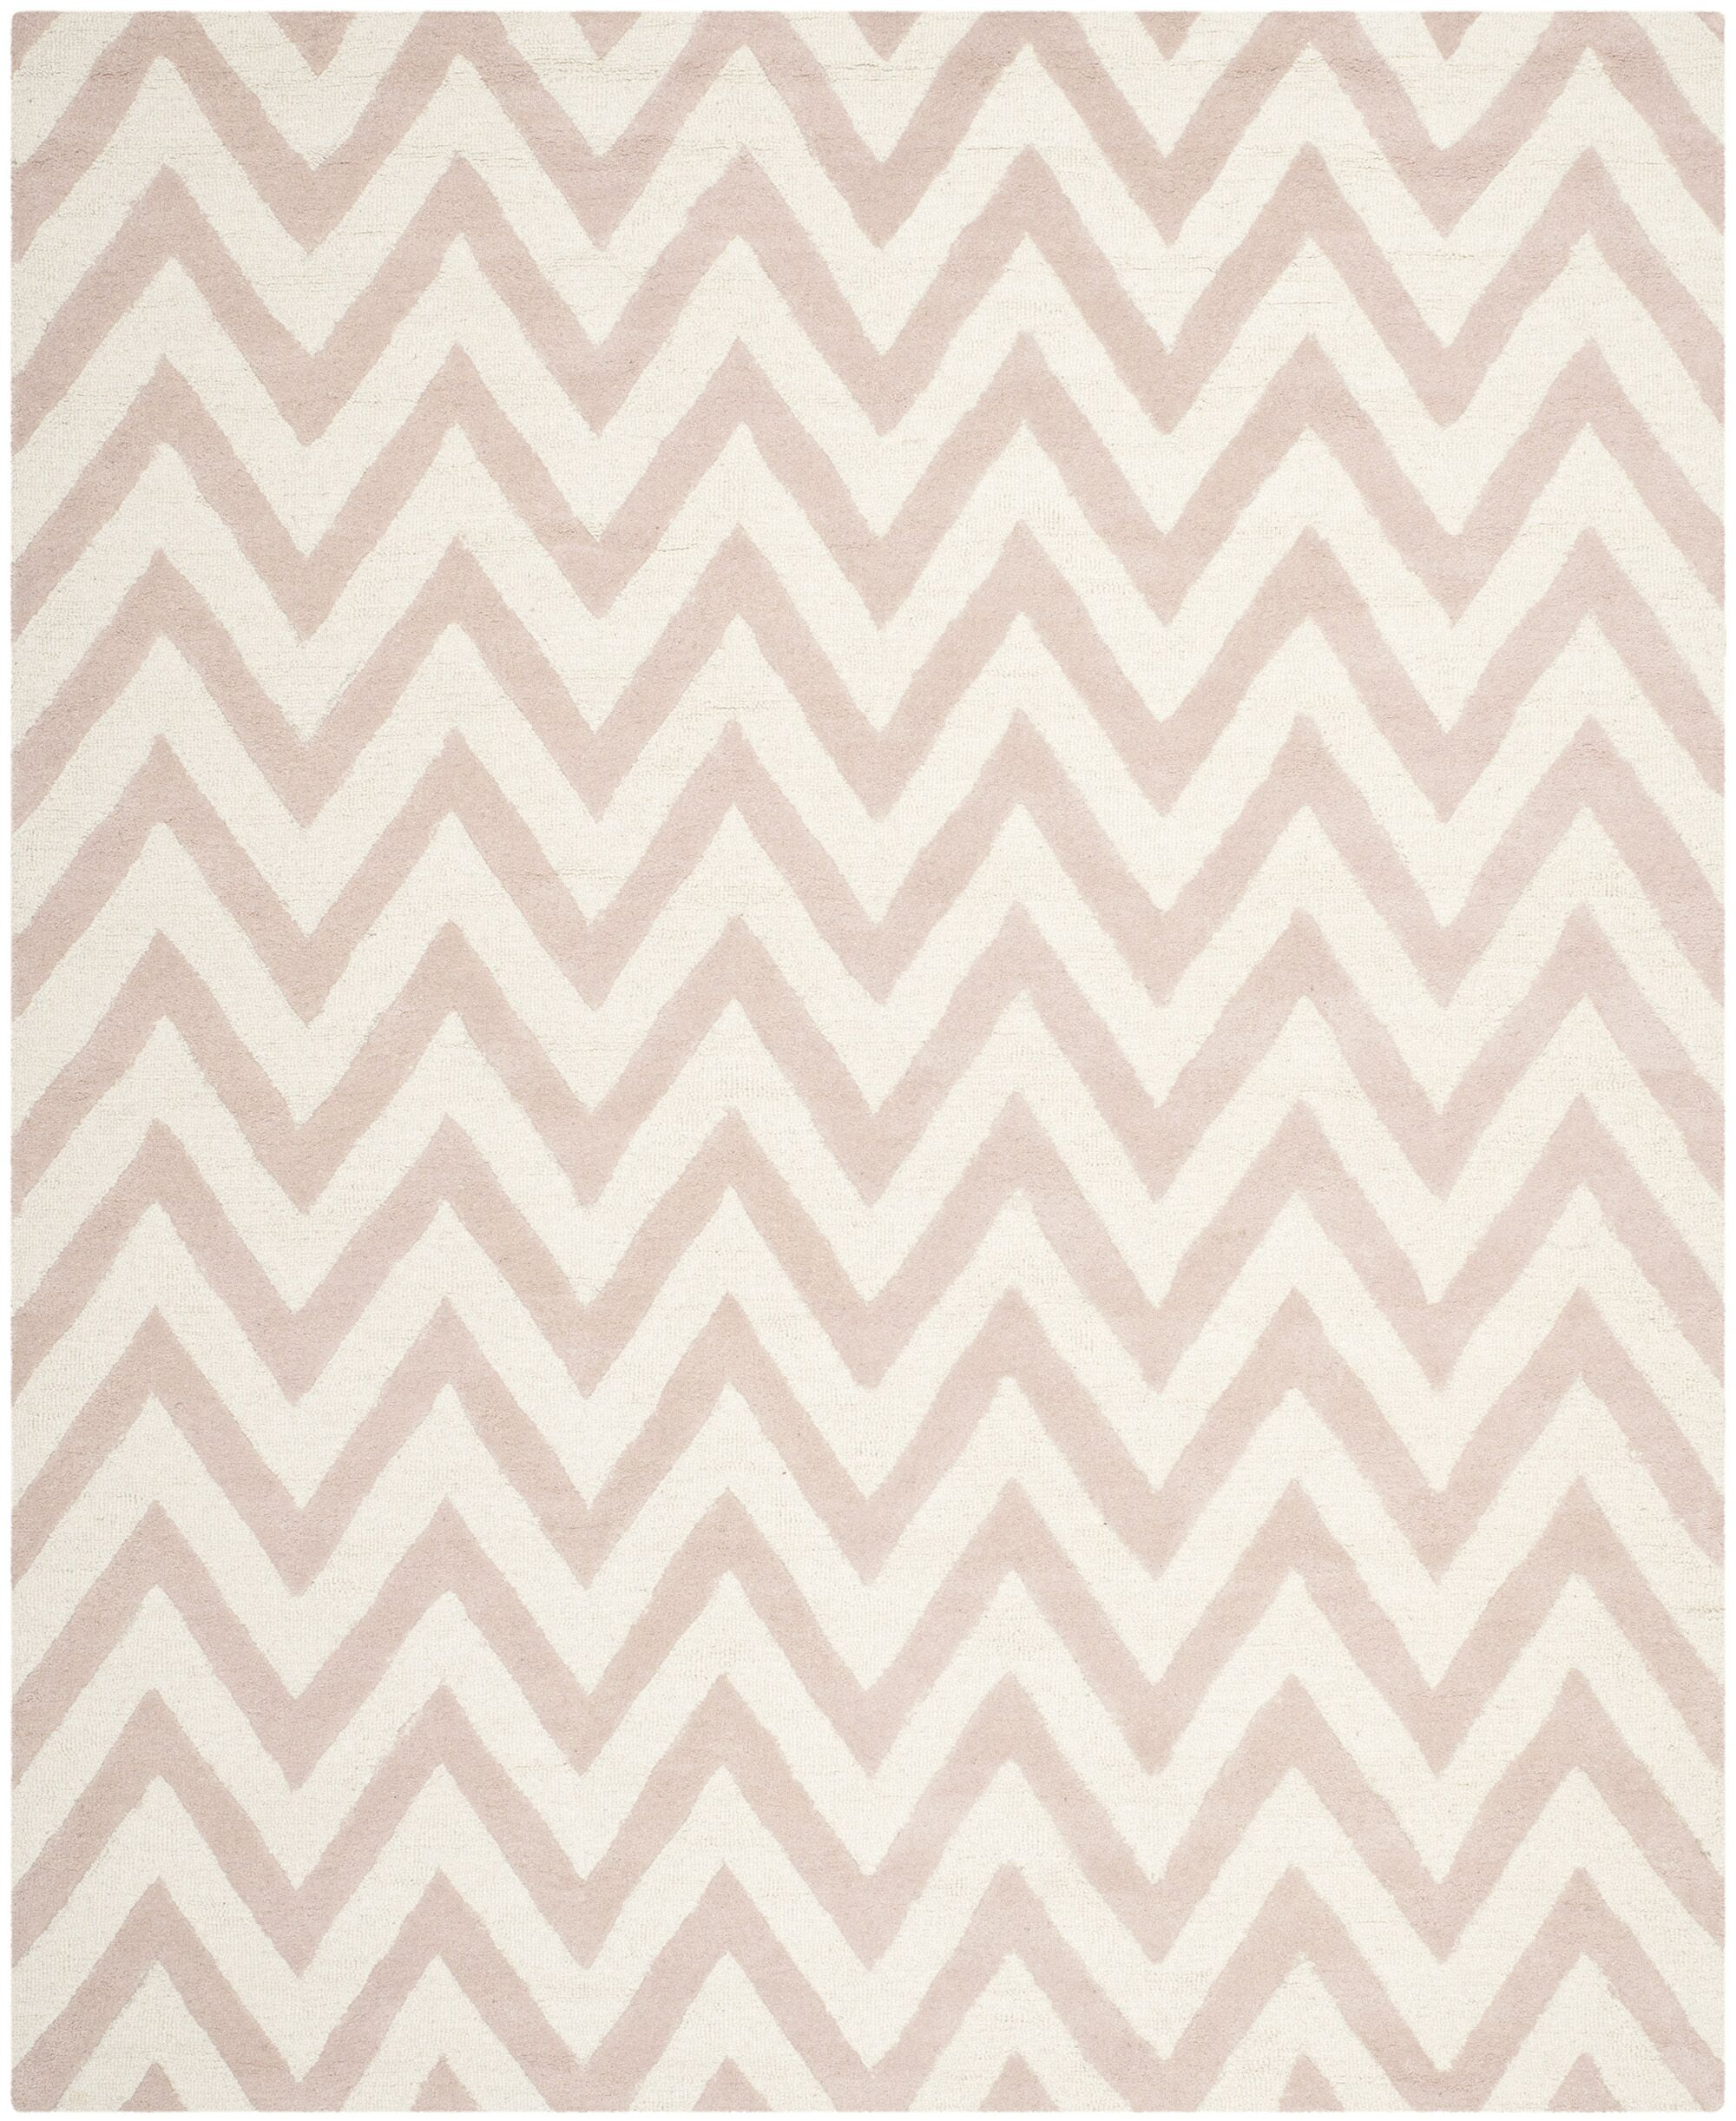 Charlenne Hand-Tufted Light Pink/Ivory Area Rug Rug Size: Rectangle 8' x 10'